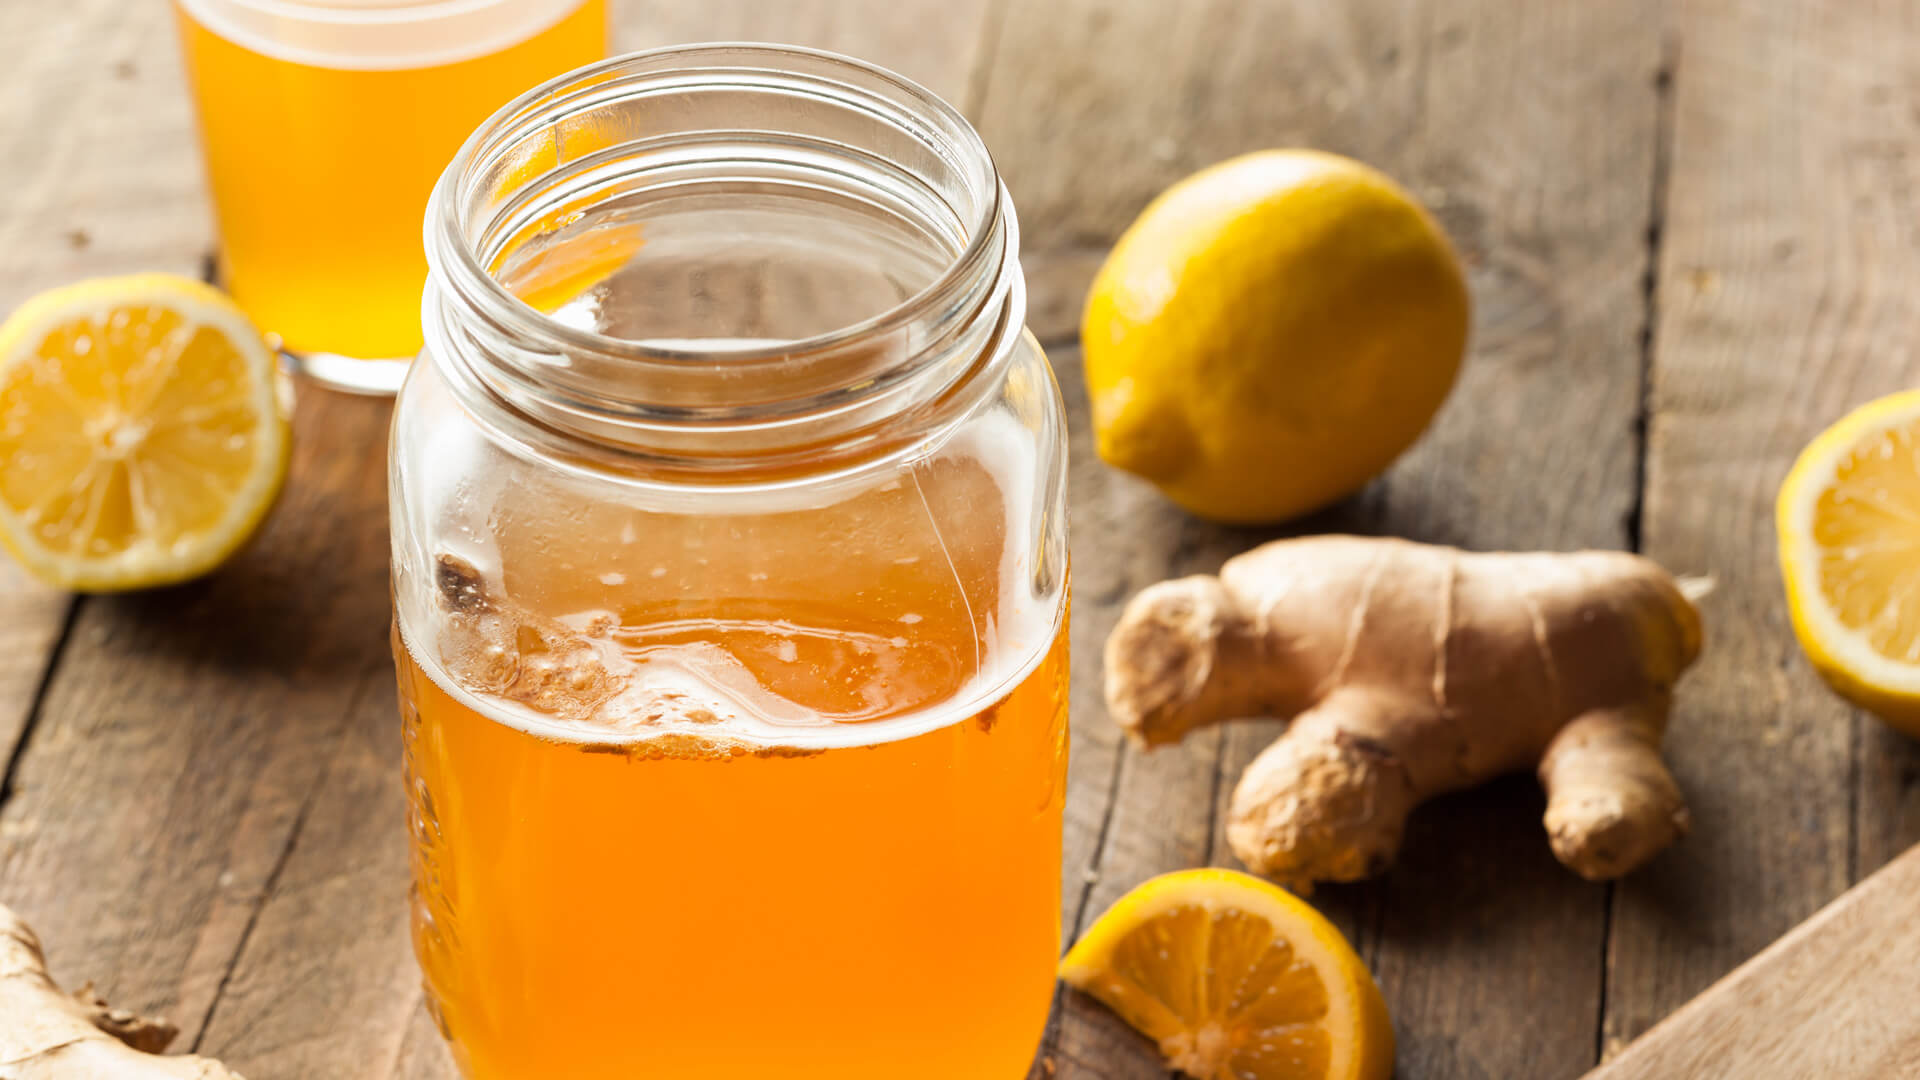 10 Foods/Drinks for Great Gut Health